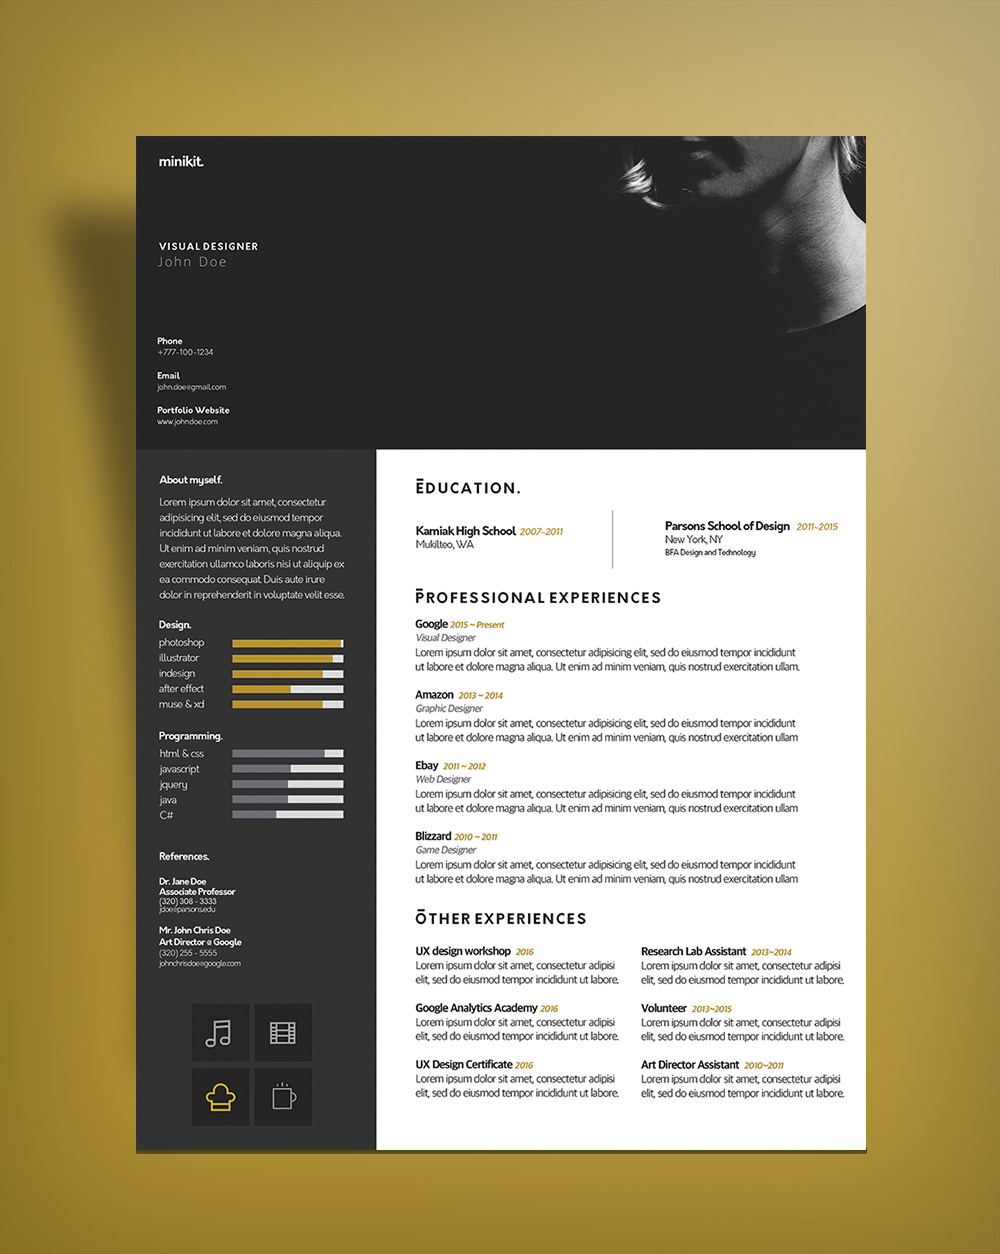 Free Curriculum Vitae  CV  Design Template For Designers PSD File         Free Curriculum Vitae CV DesignTemplate PSD File  3